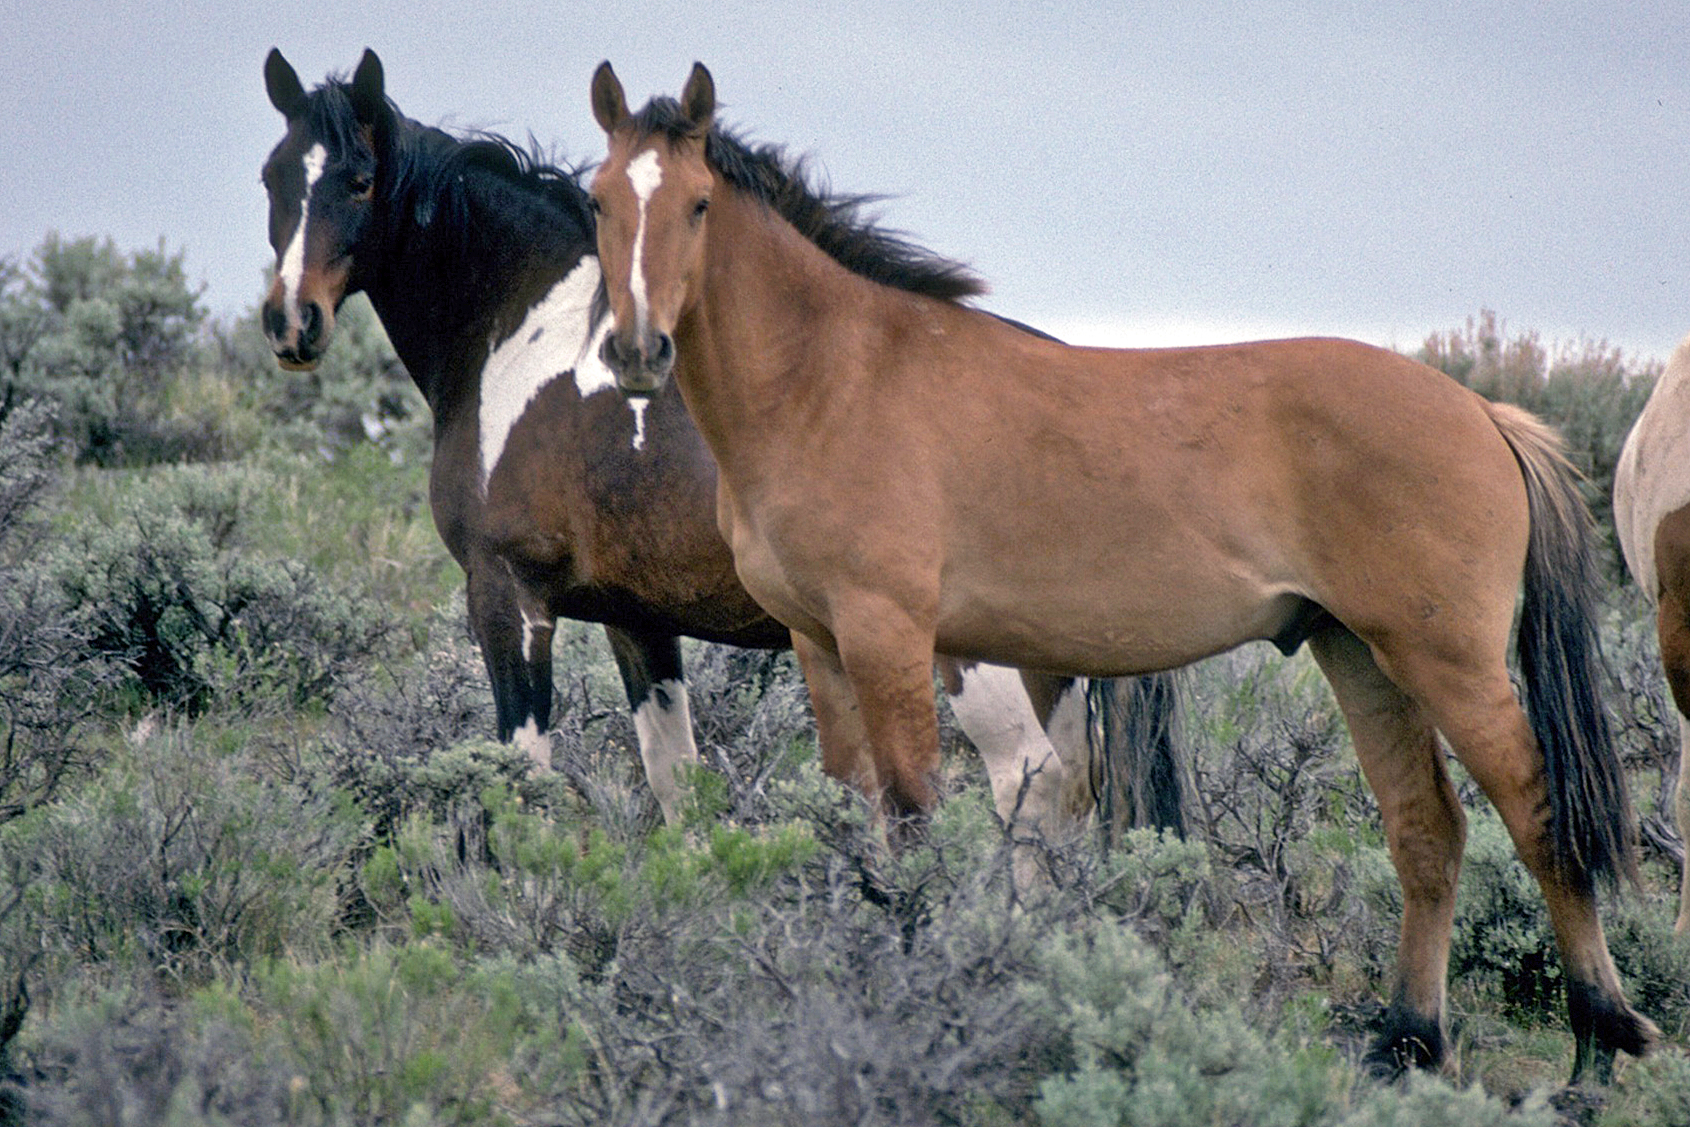 wild horse dating Related to this need to flee from predators in the wild is an unusual trait: horses are able to sleep both standing up and lying down, with younger horses tending to sleep significantly more than adults.